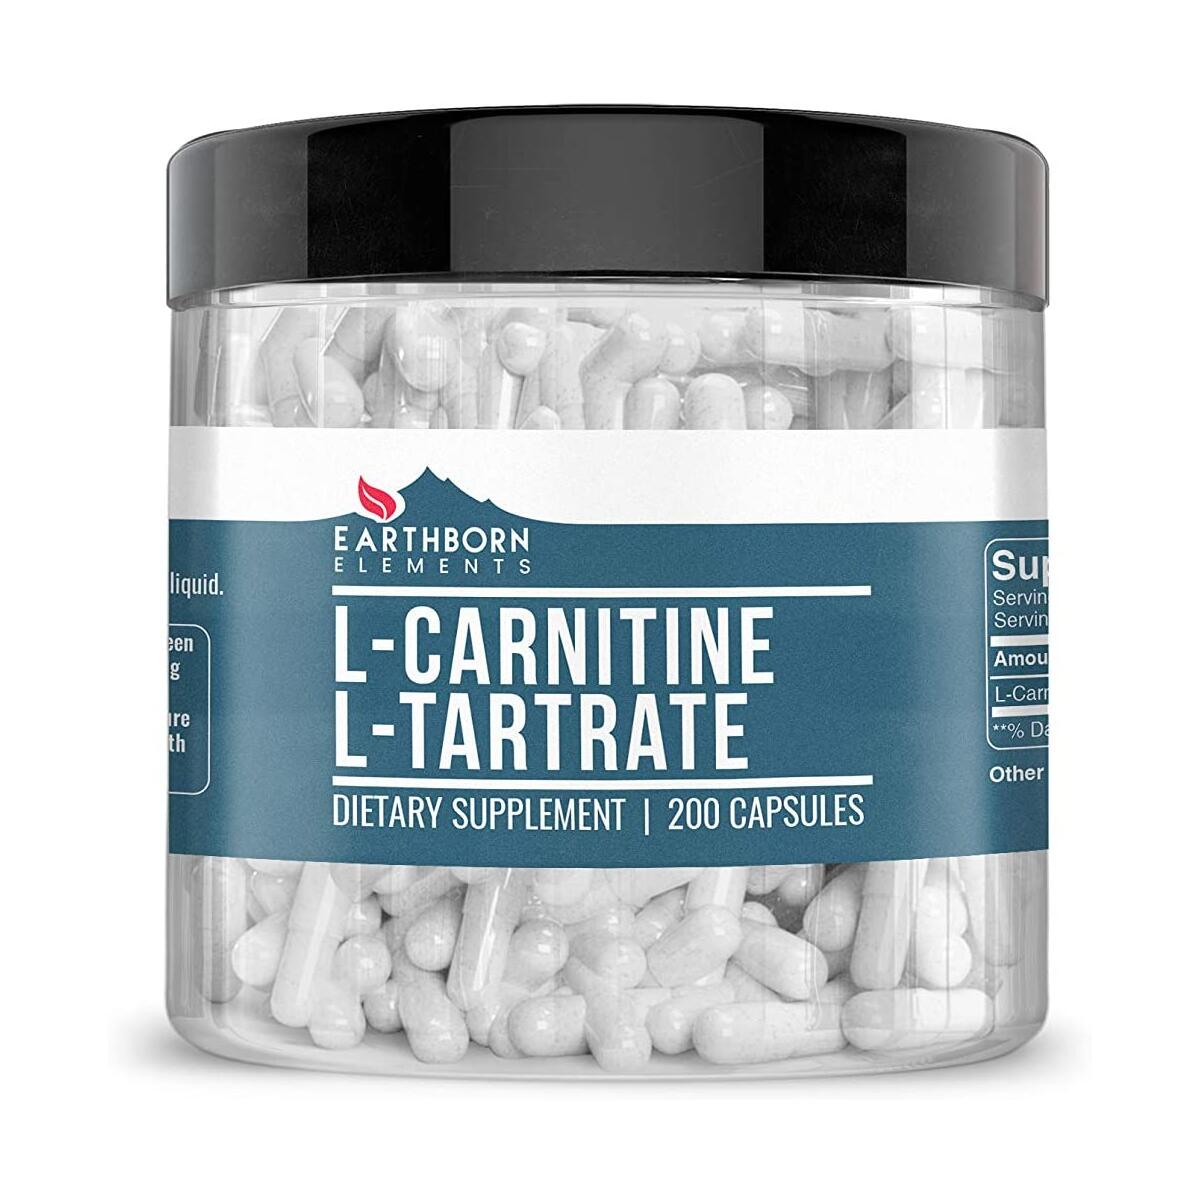 L-Carnitine Tartrate, 200 Capsules, 900 mg Serving, No Magnesium or Rice Fillers, No Additives, Gluten-Free, Potent, Undiluted, High Quality, Made in The USA